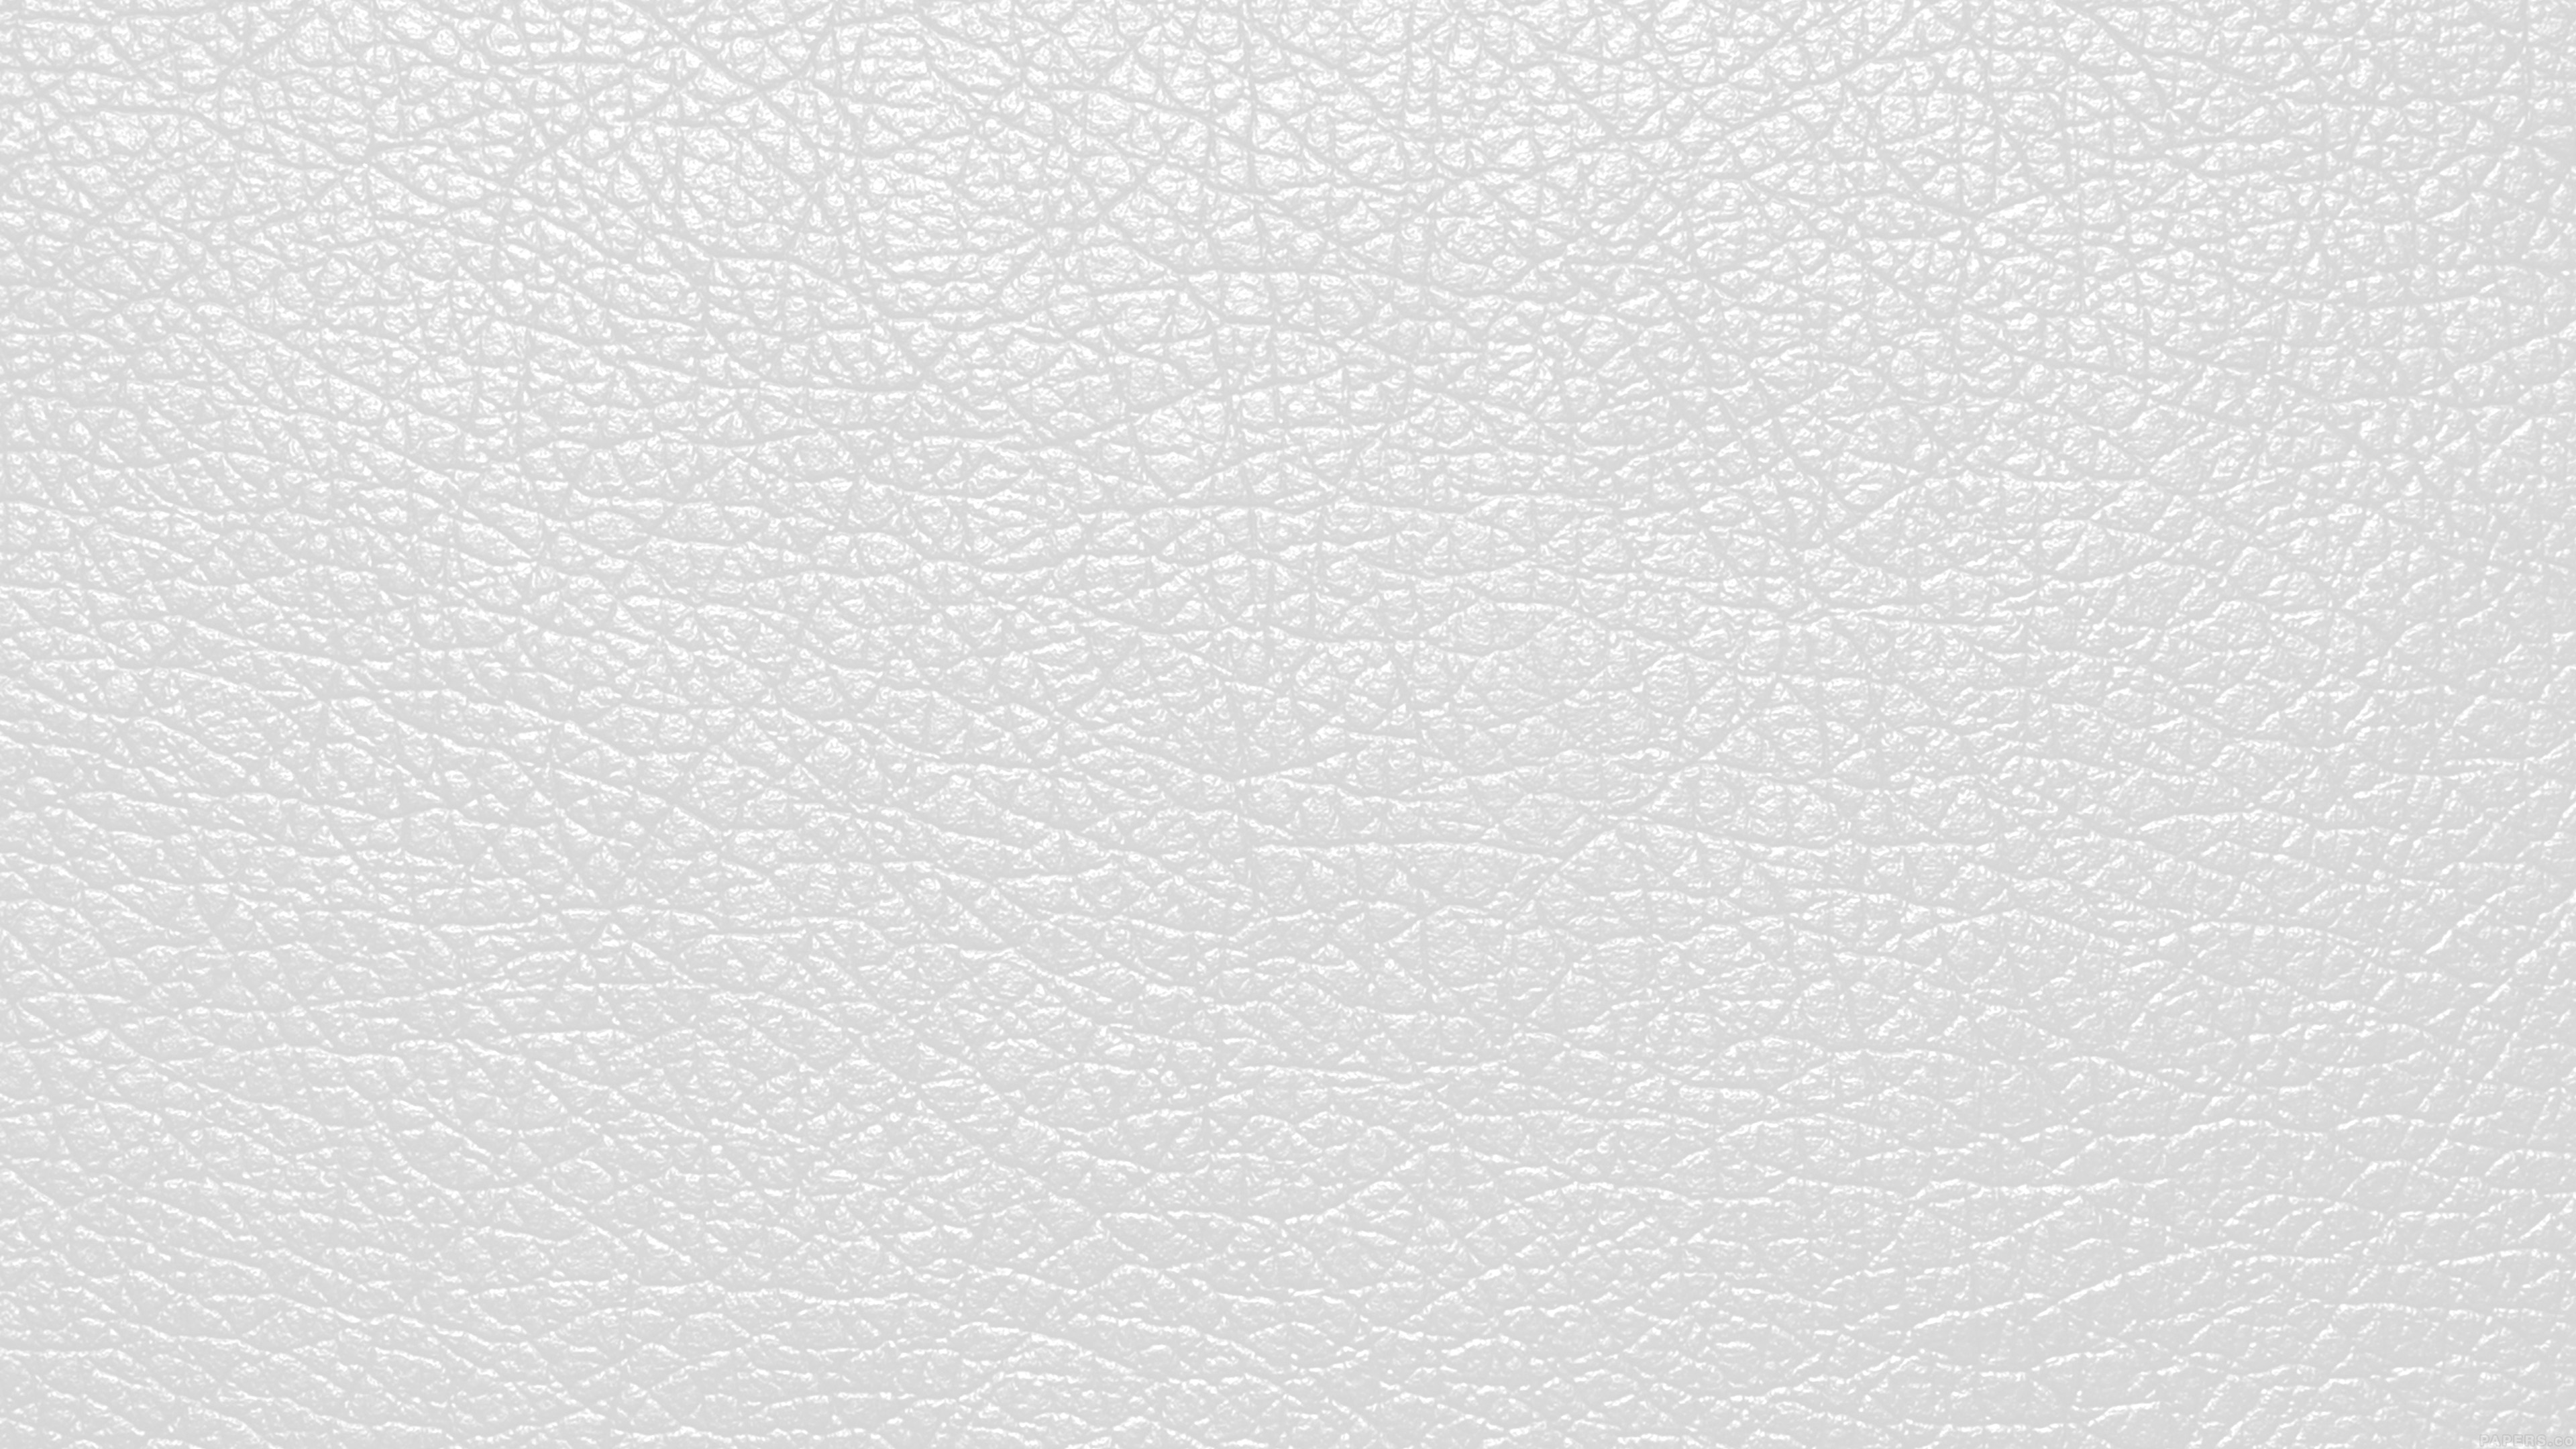 Vi31 Texture Skin White Leather Pattern Wallpaper